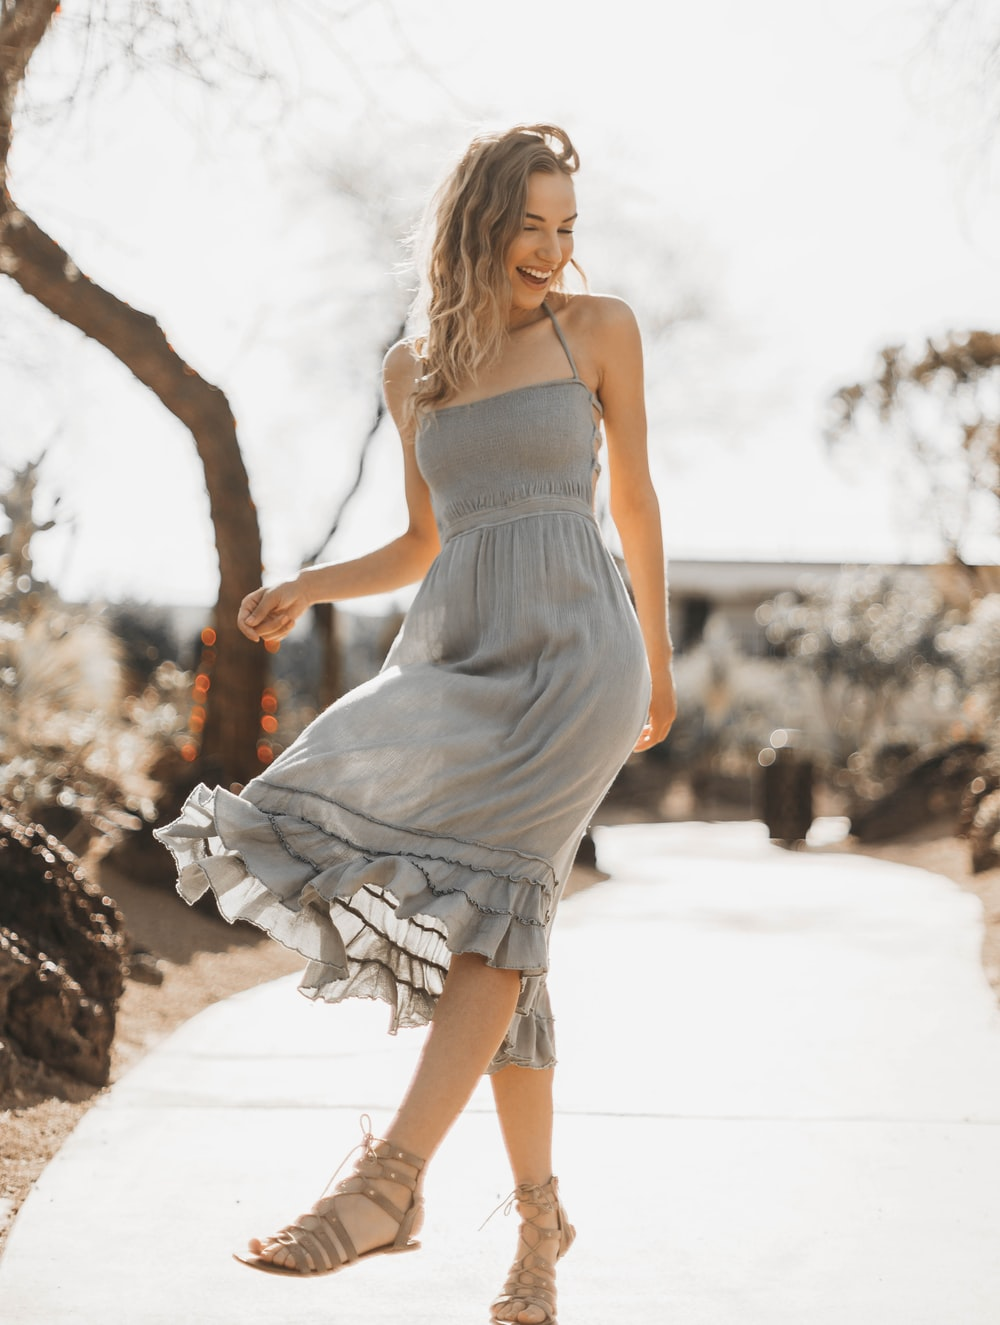 woman in gray spaghetti strap dress standing and smiling